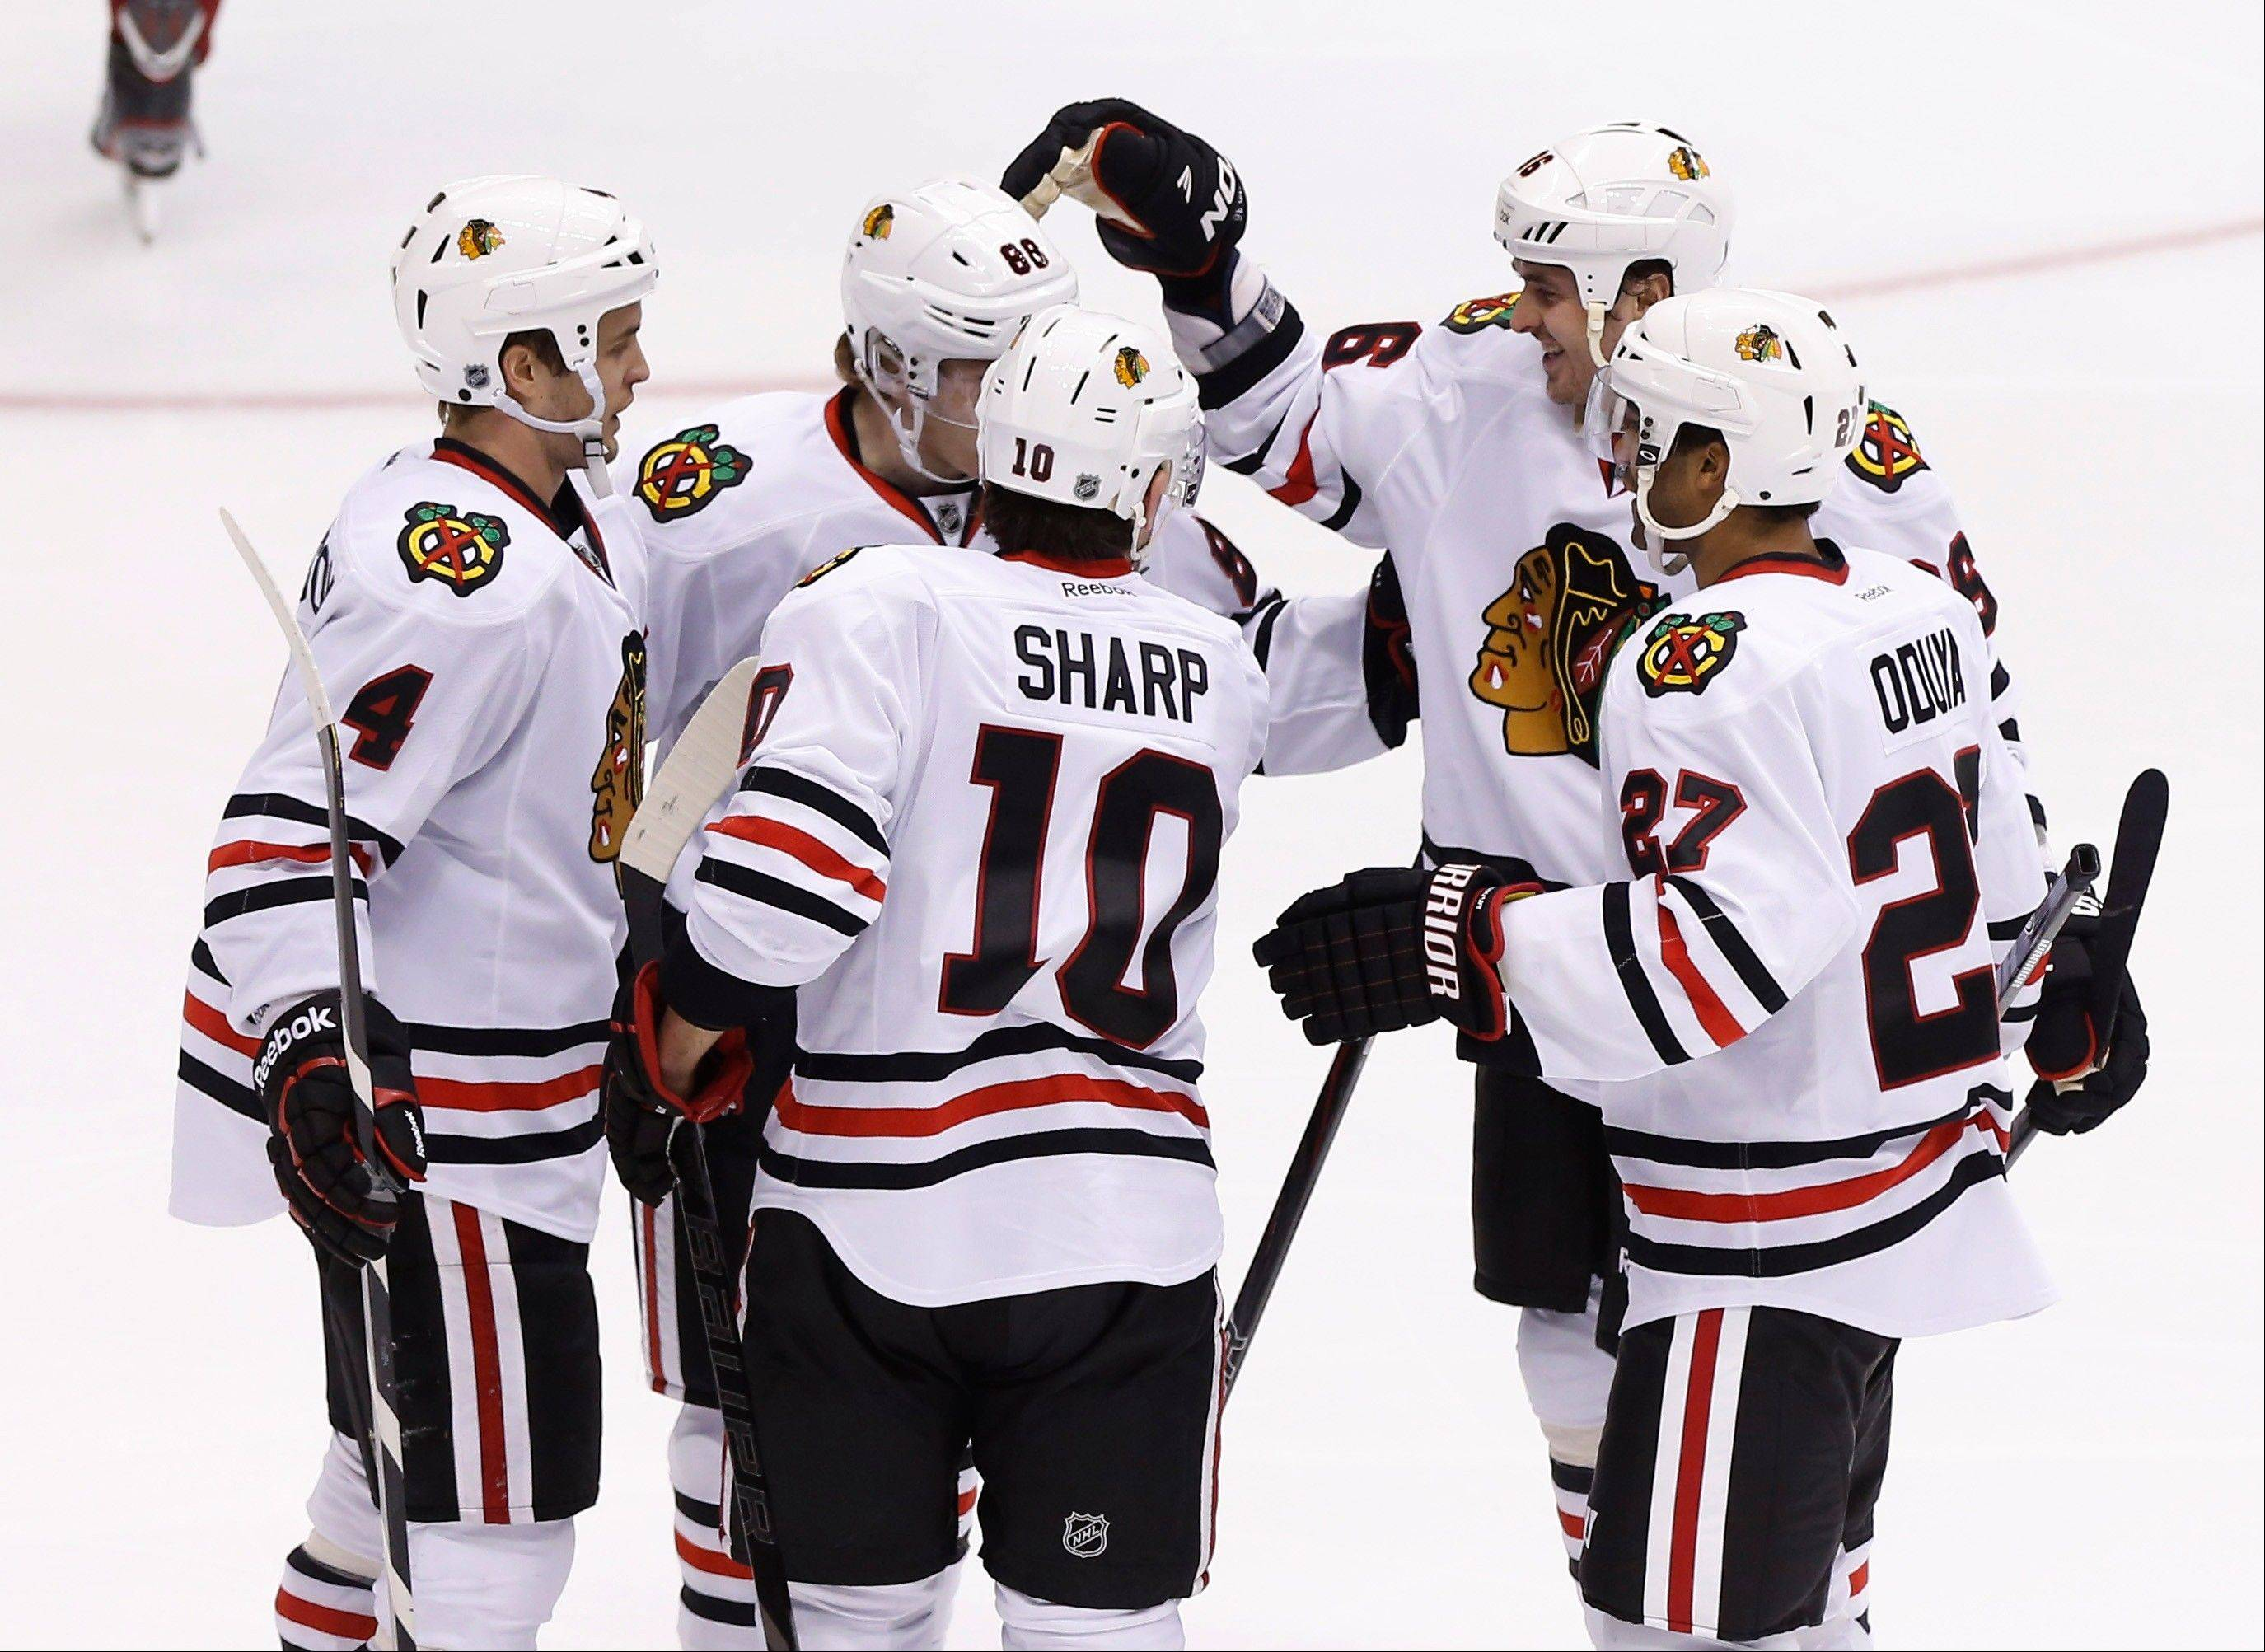 Blackhawks second line center Dave Bolland, right, celebrates his goal with teammates Johnny Oduya (27), Patrick Sharp (10), Niklas Hjalmarsson (4), and Patrick Kane (88) during Sunday�s 6-4 win at Phoenix.